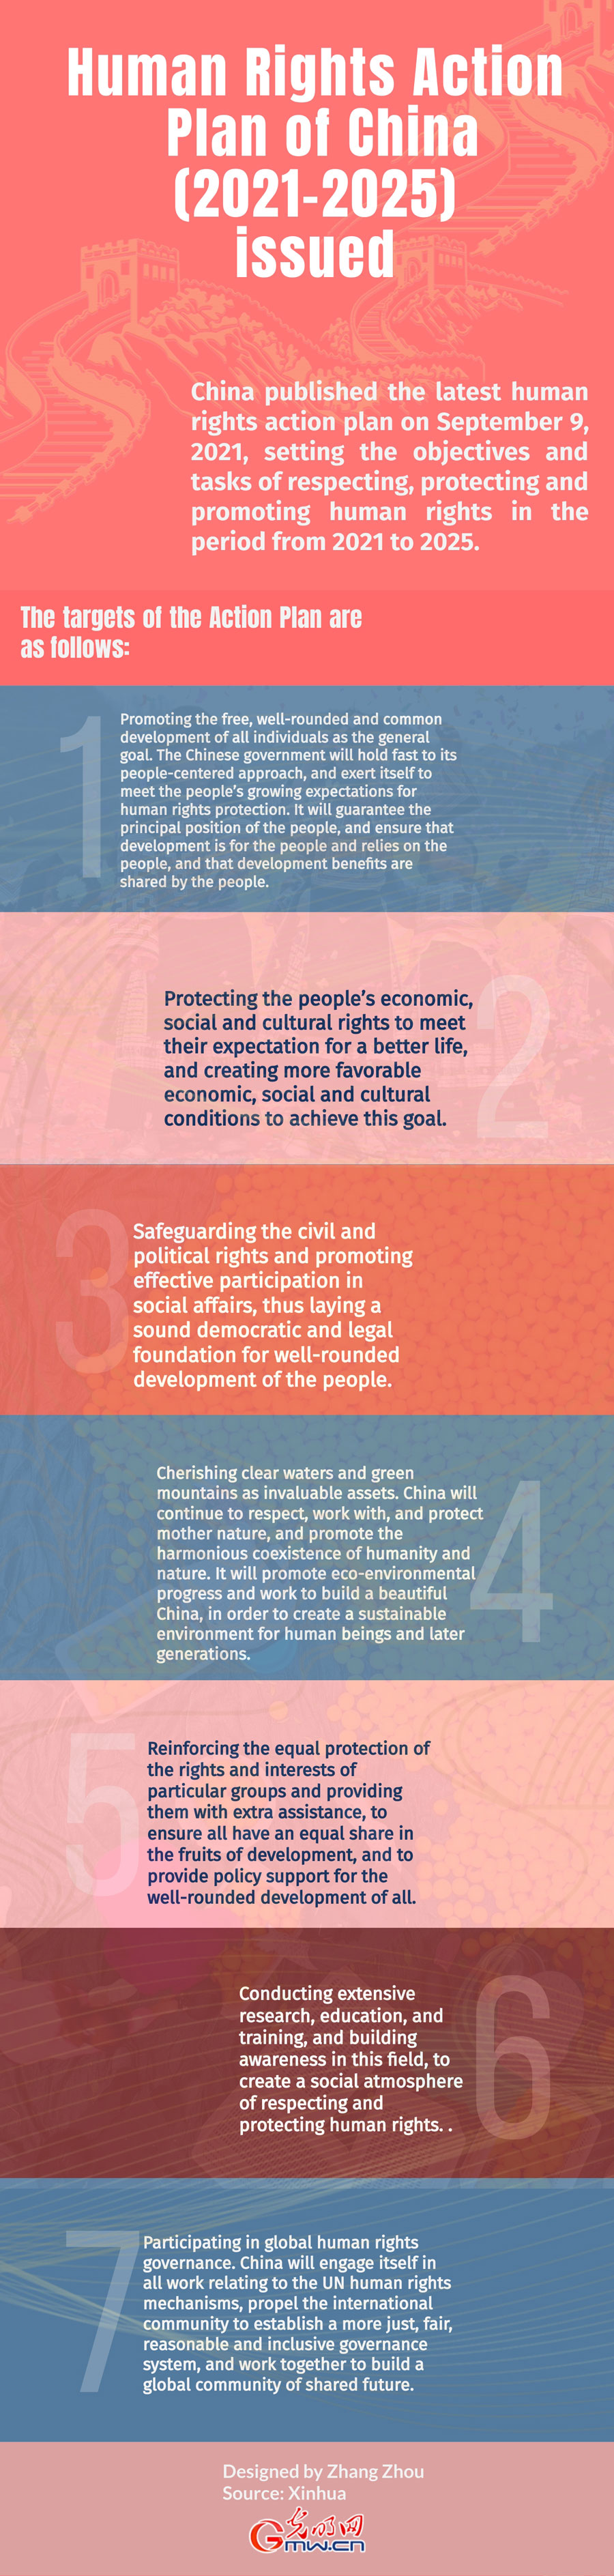 Infographic: Human Rights Action Plan of China (2021-2025) issued